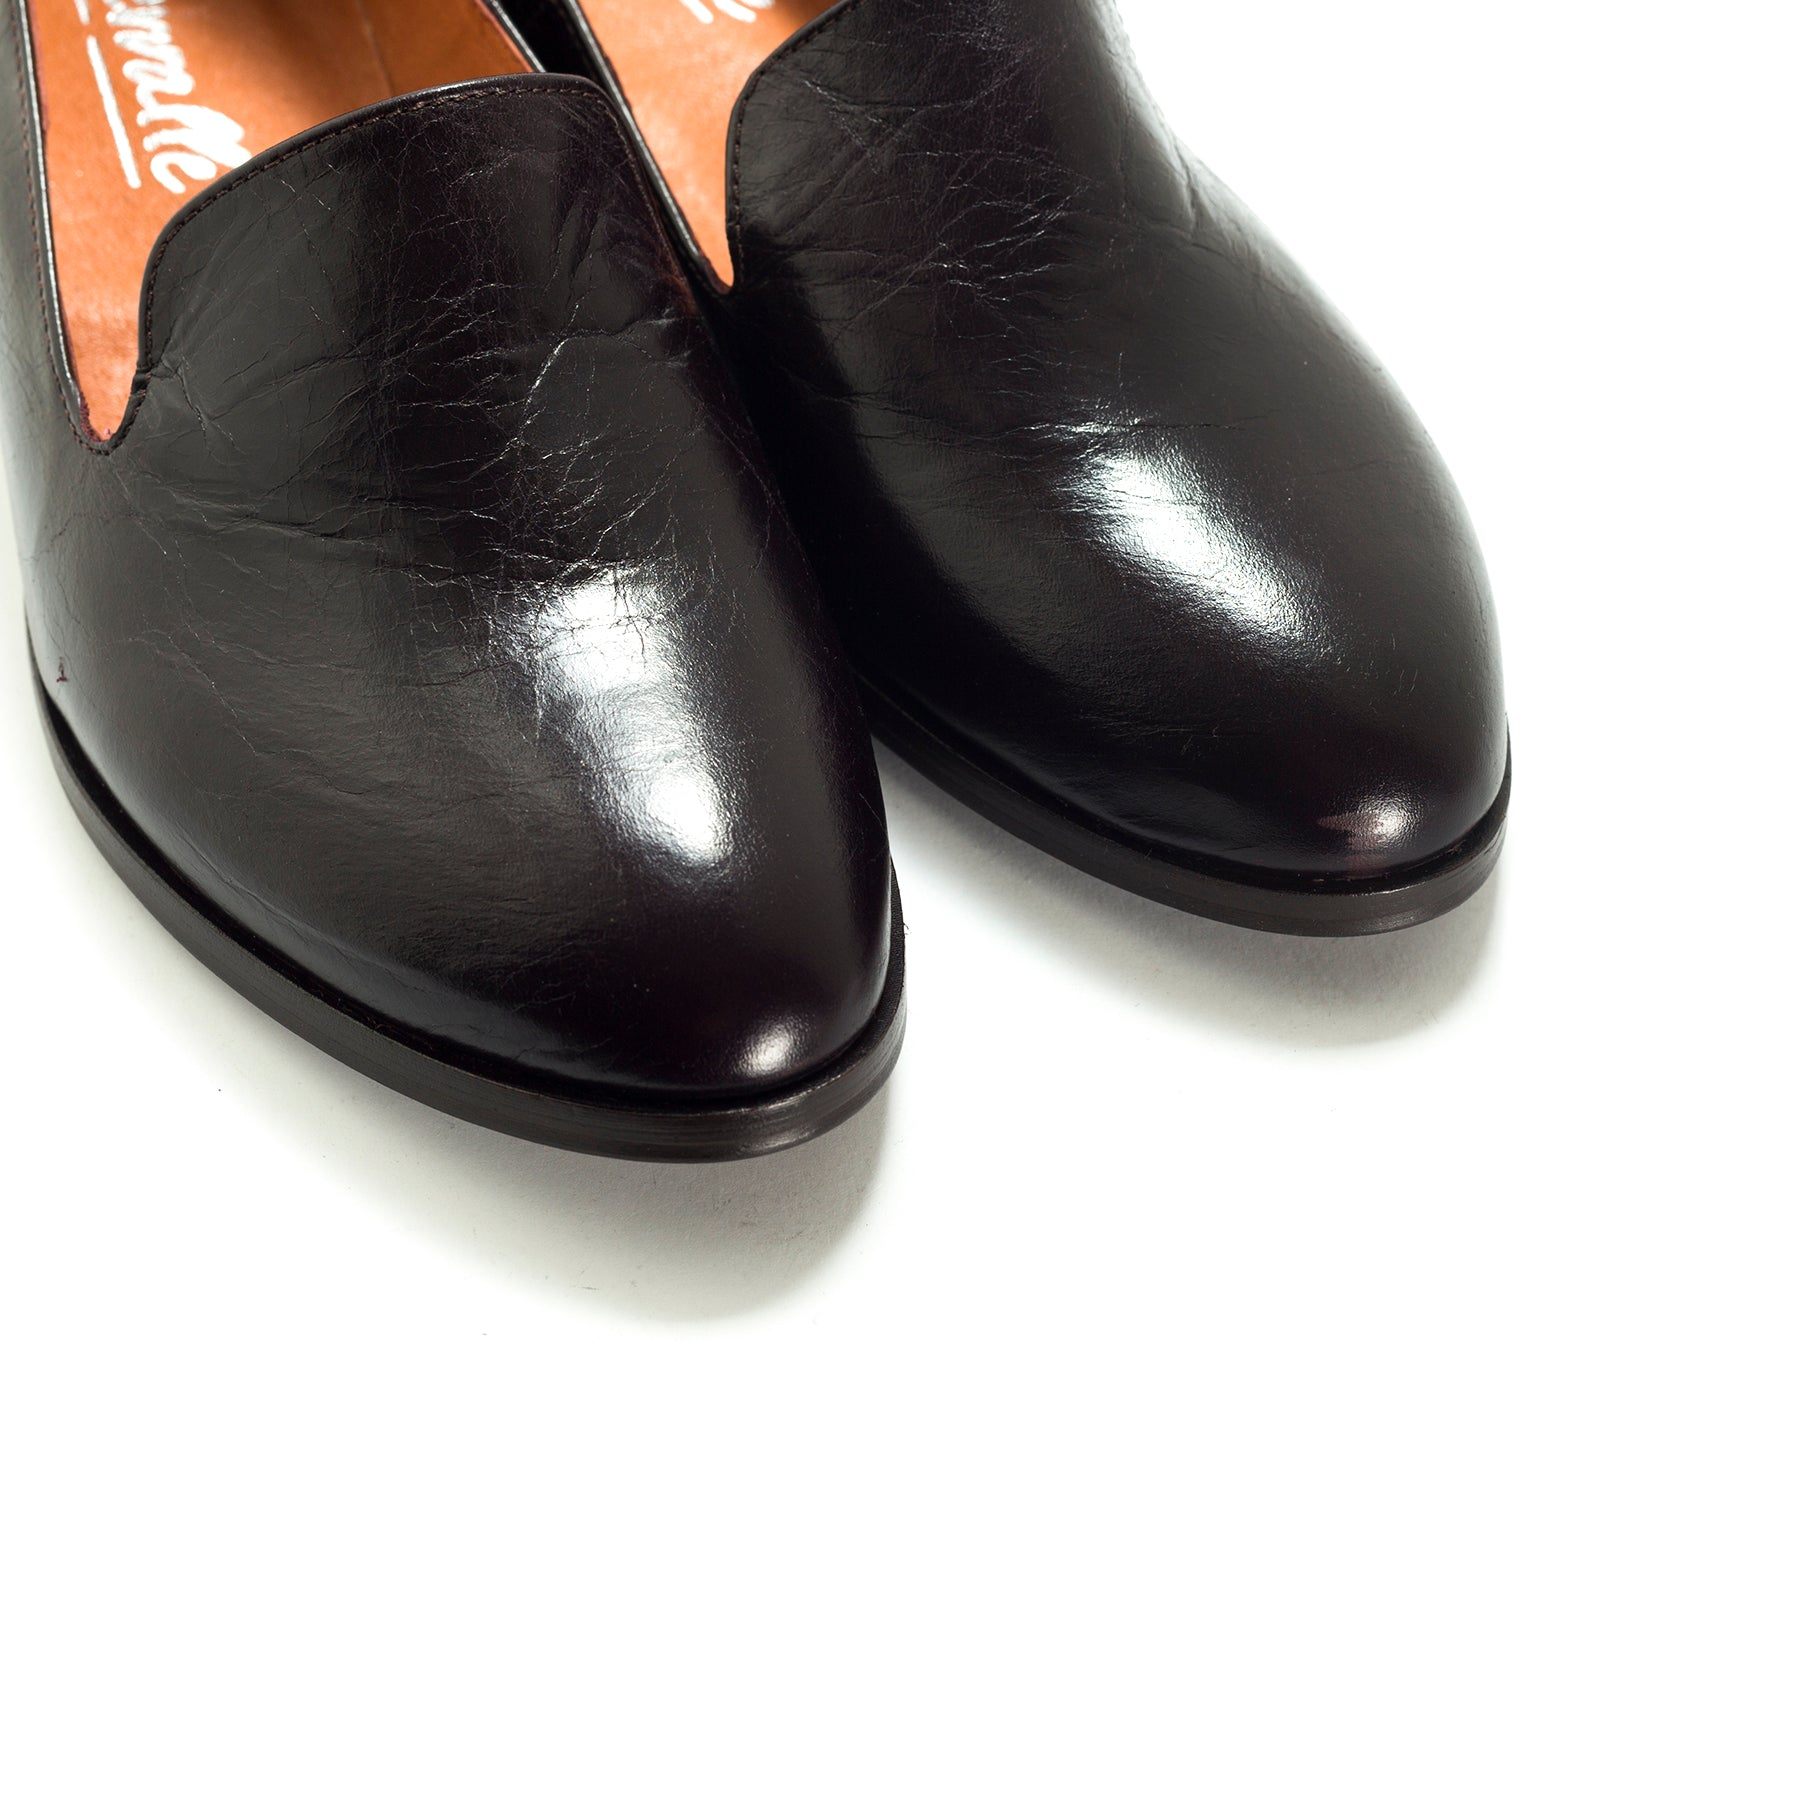 Nena Deep Bordo Leather Shoes